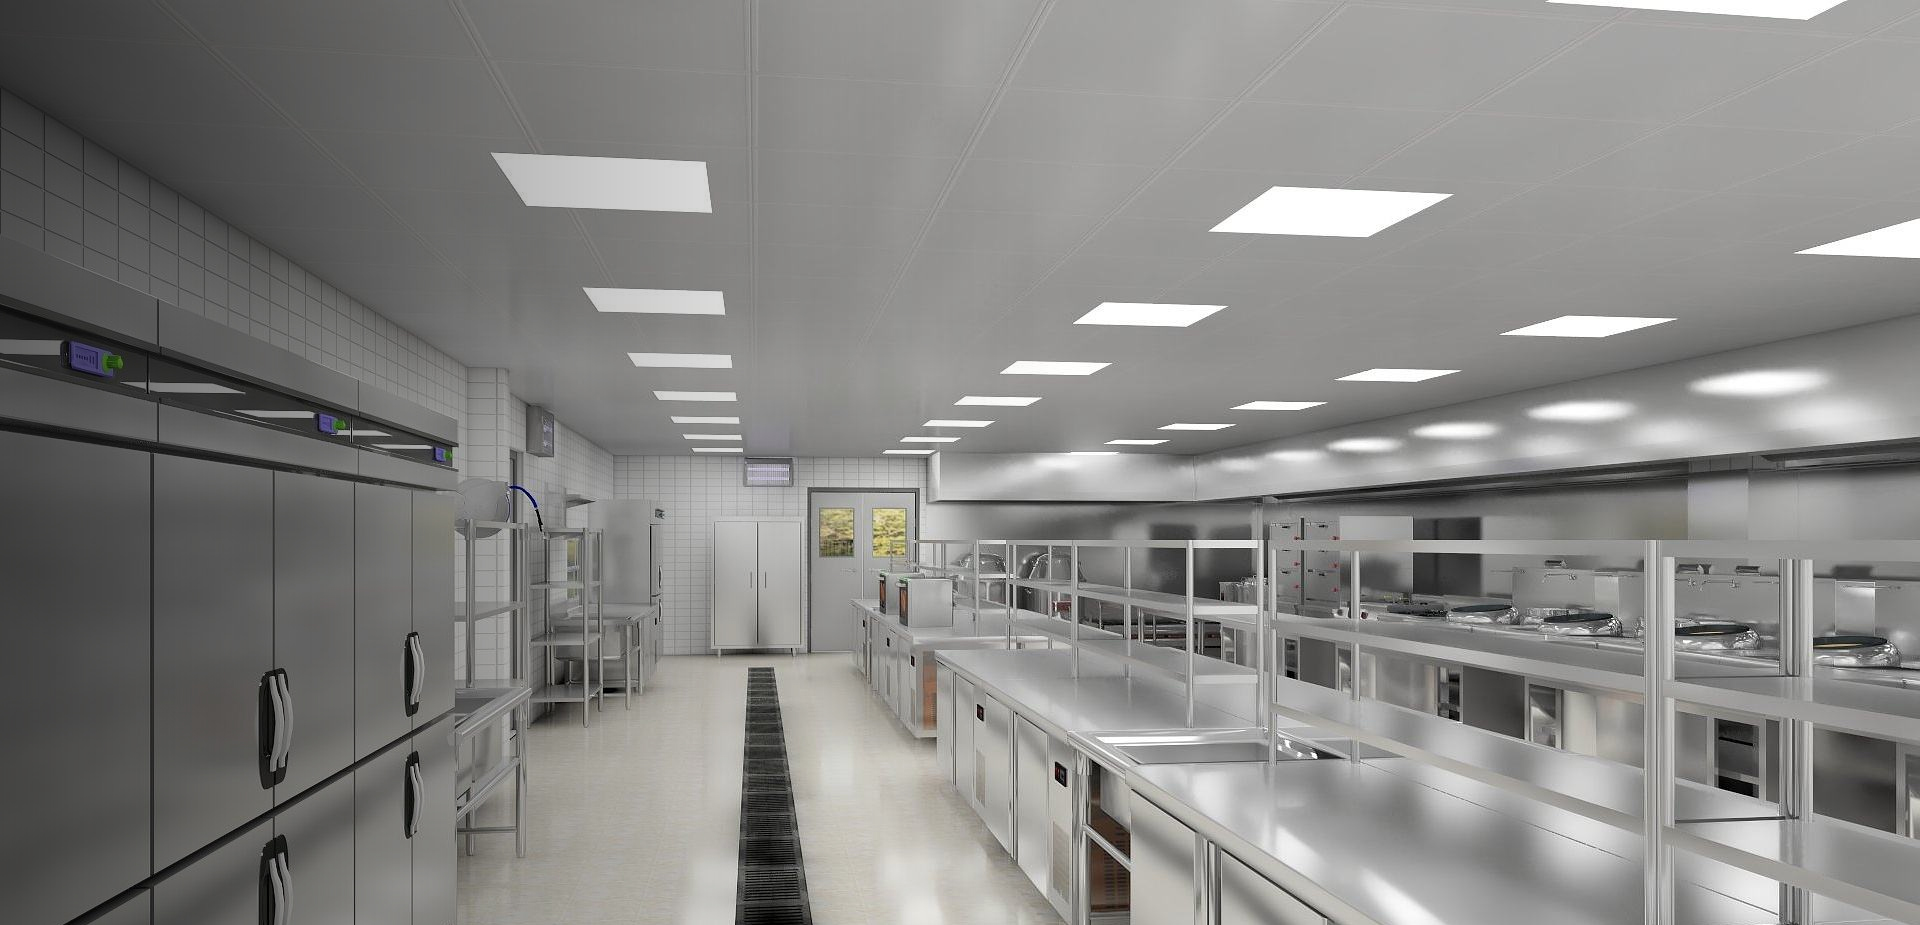 INTELLIGENTAL DESIGN FOR COMMERCIAL KITCHEN OPERATION AND MANAGEMENT FROM JIULONG